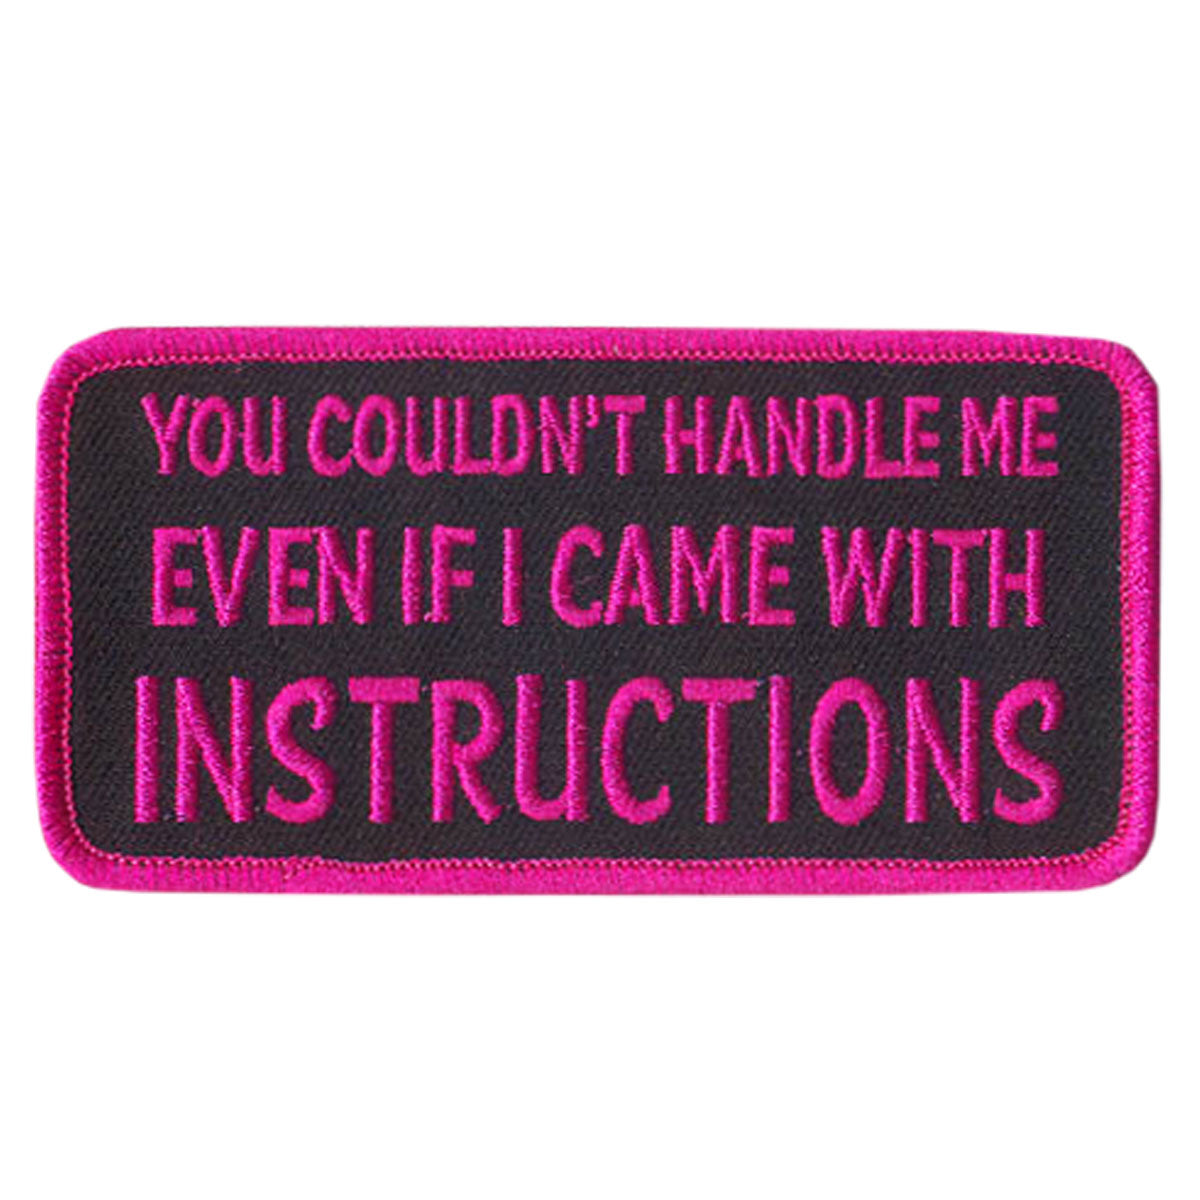 "Hot Leathers You Couldn't Handle Me 4"" x 2"" Patch"